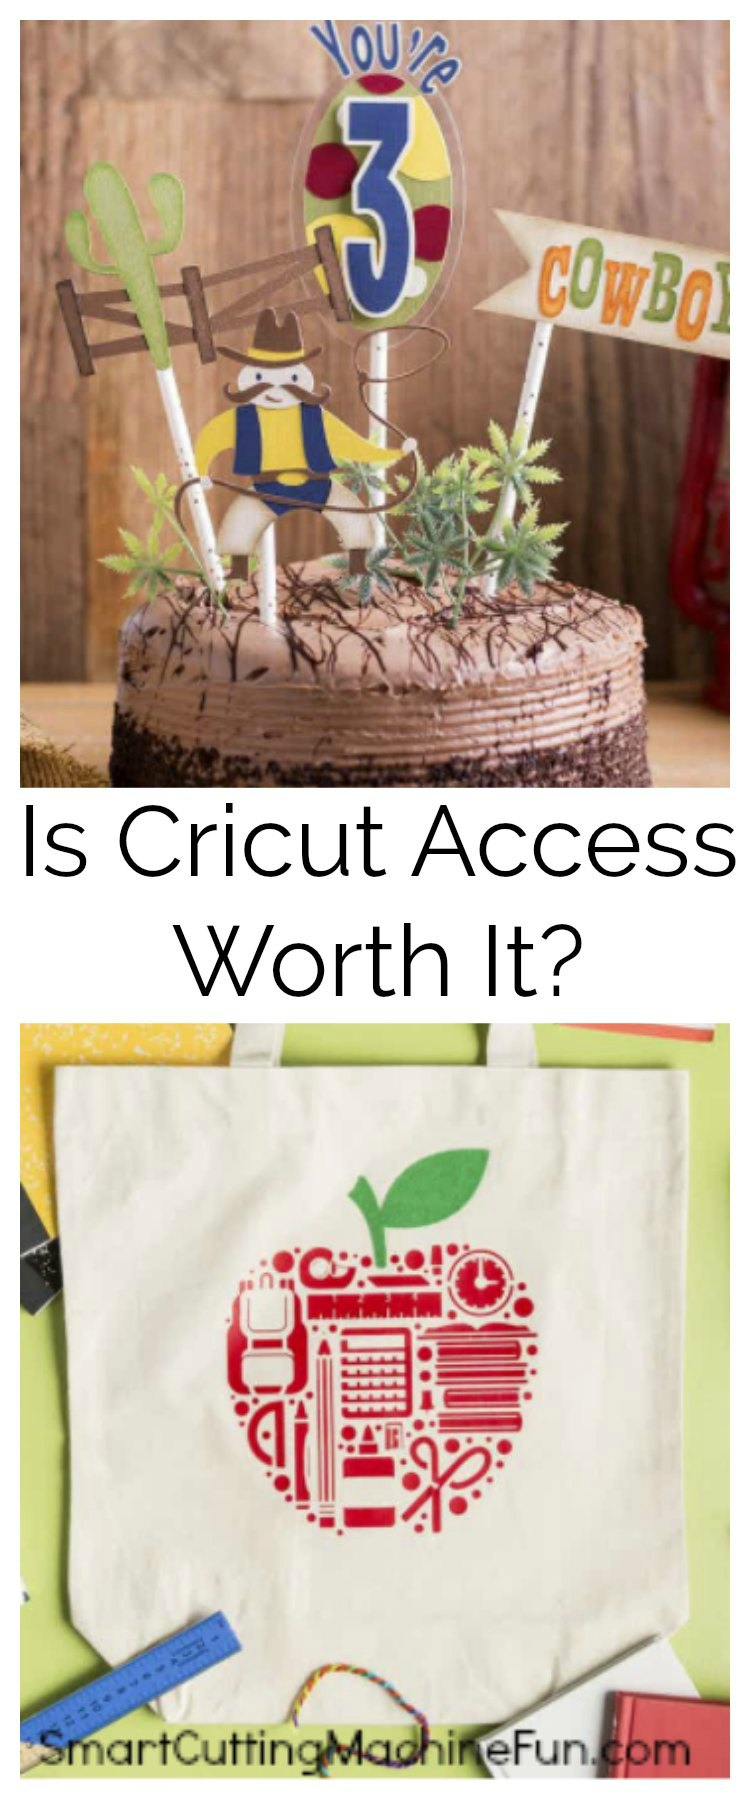 Is Cricut Access Worth It